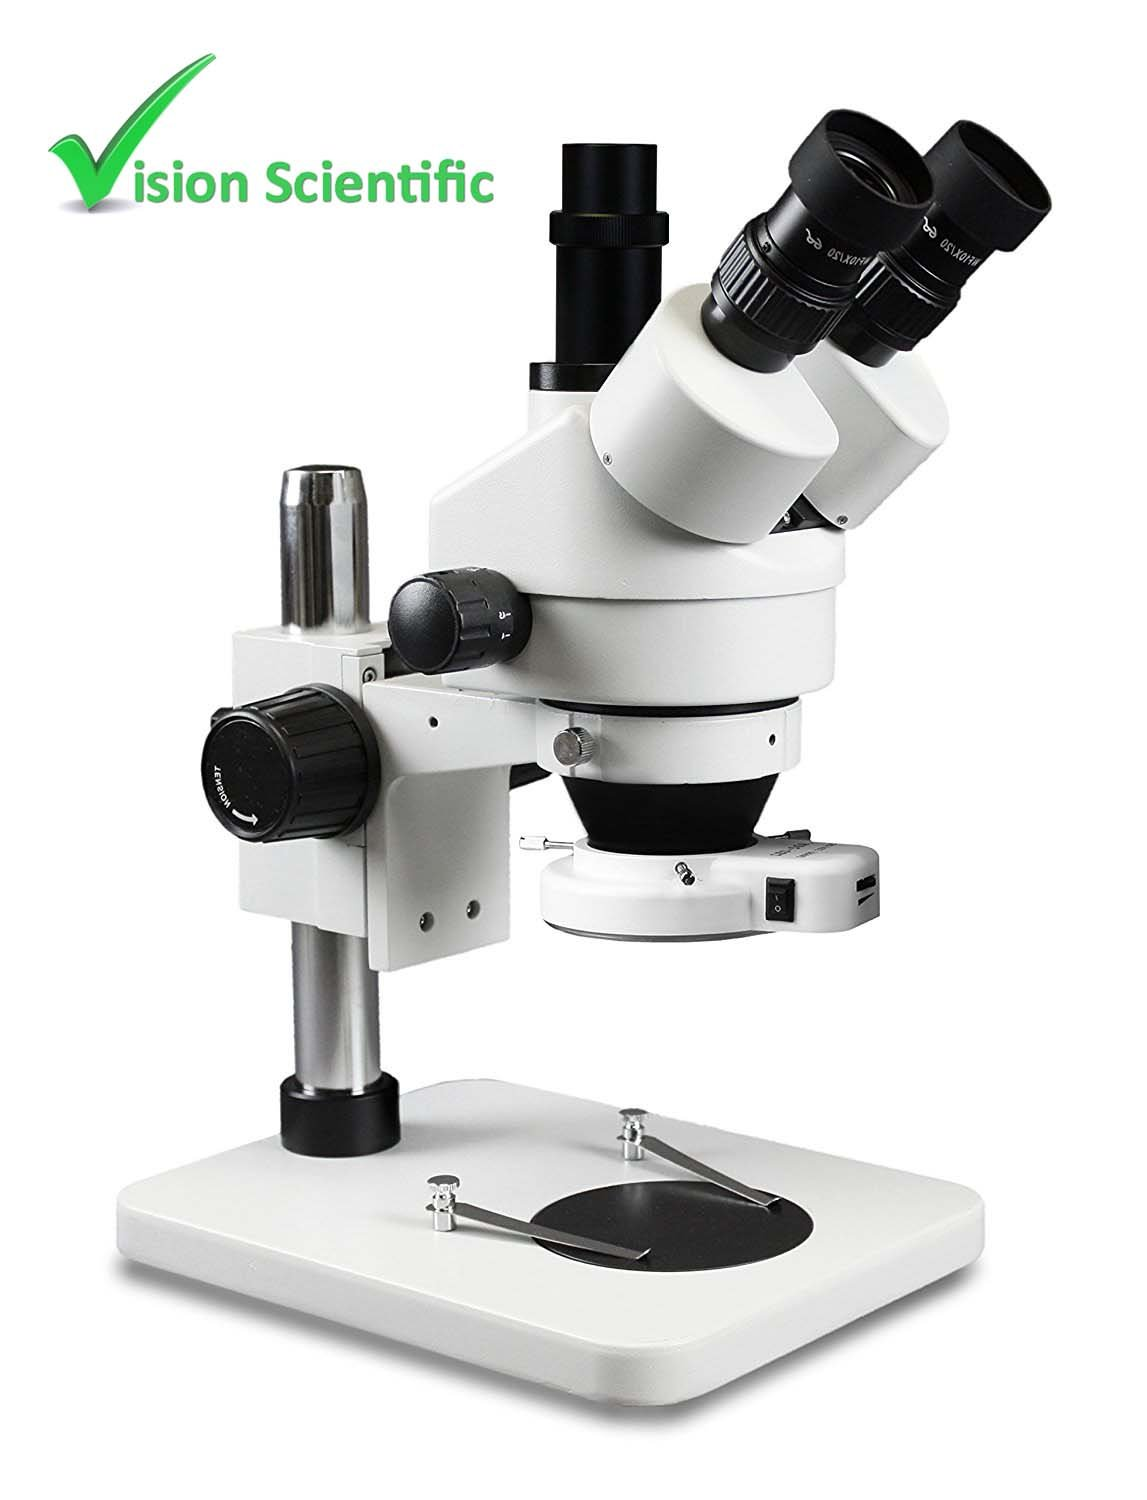 Vision Scientific VS-1F-IFR06 Trinocular Zoom Stereo Microscope, Paired 10x Widefield Eyepiece, 0.7x—4.5x Zoom Range, 7x—45x Magnification Range, Pillar Stand, 56-LED ring light with intensity control